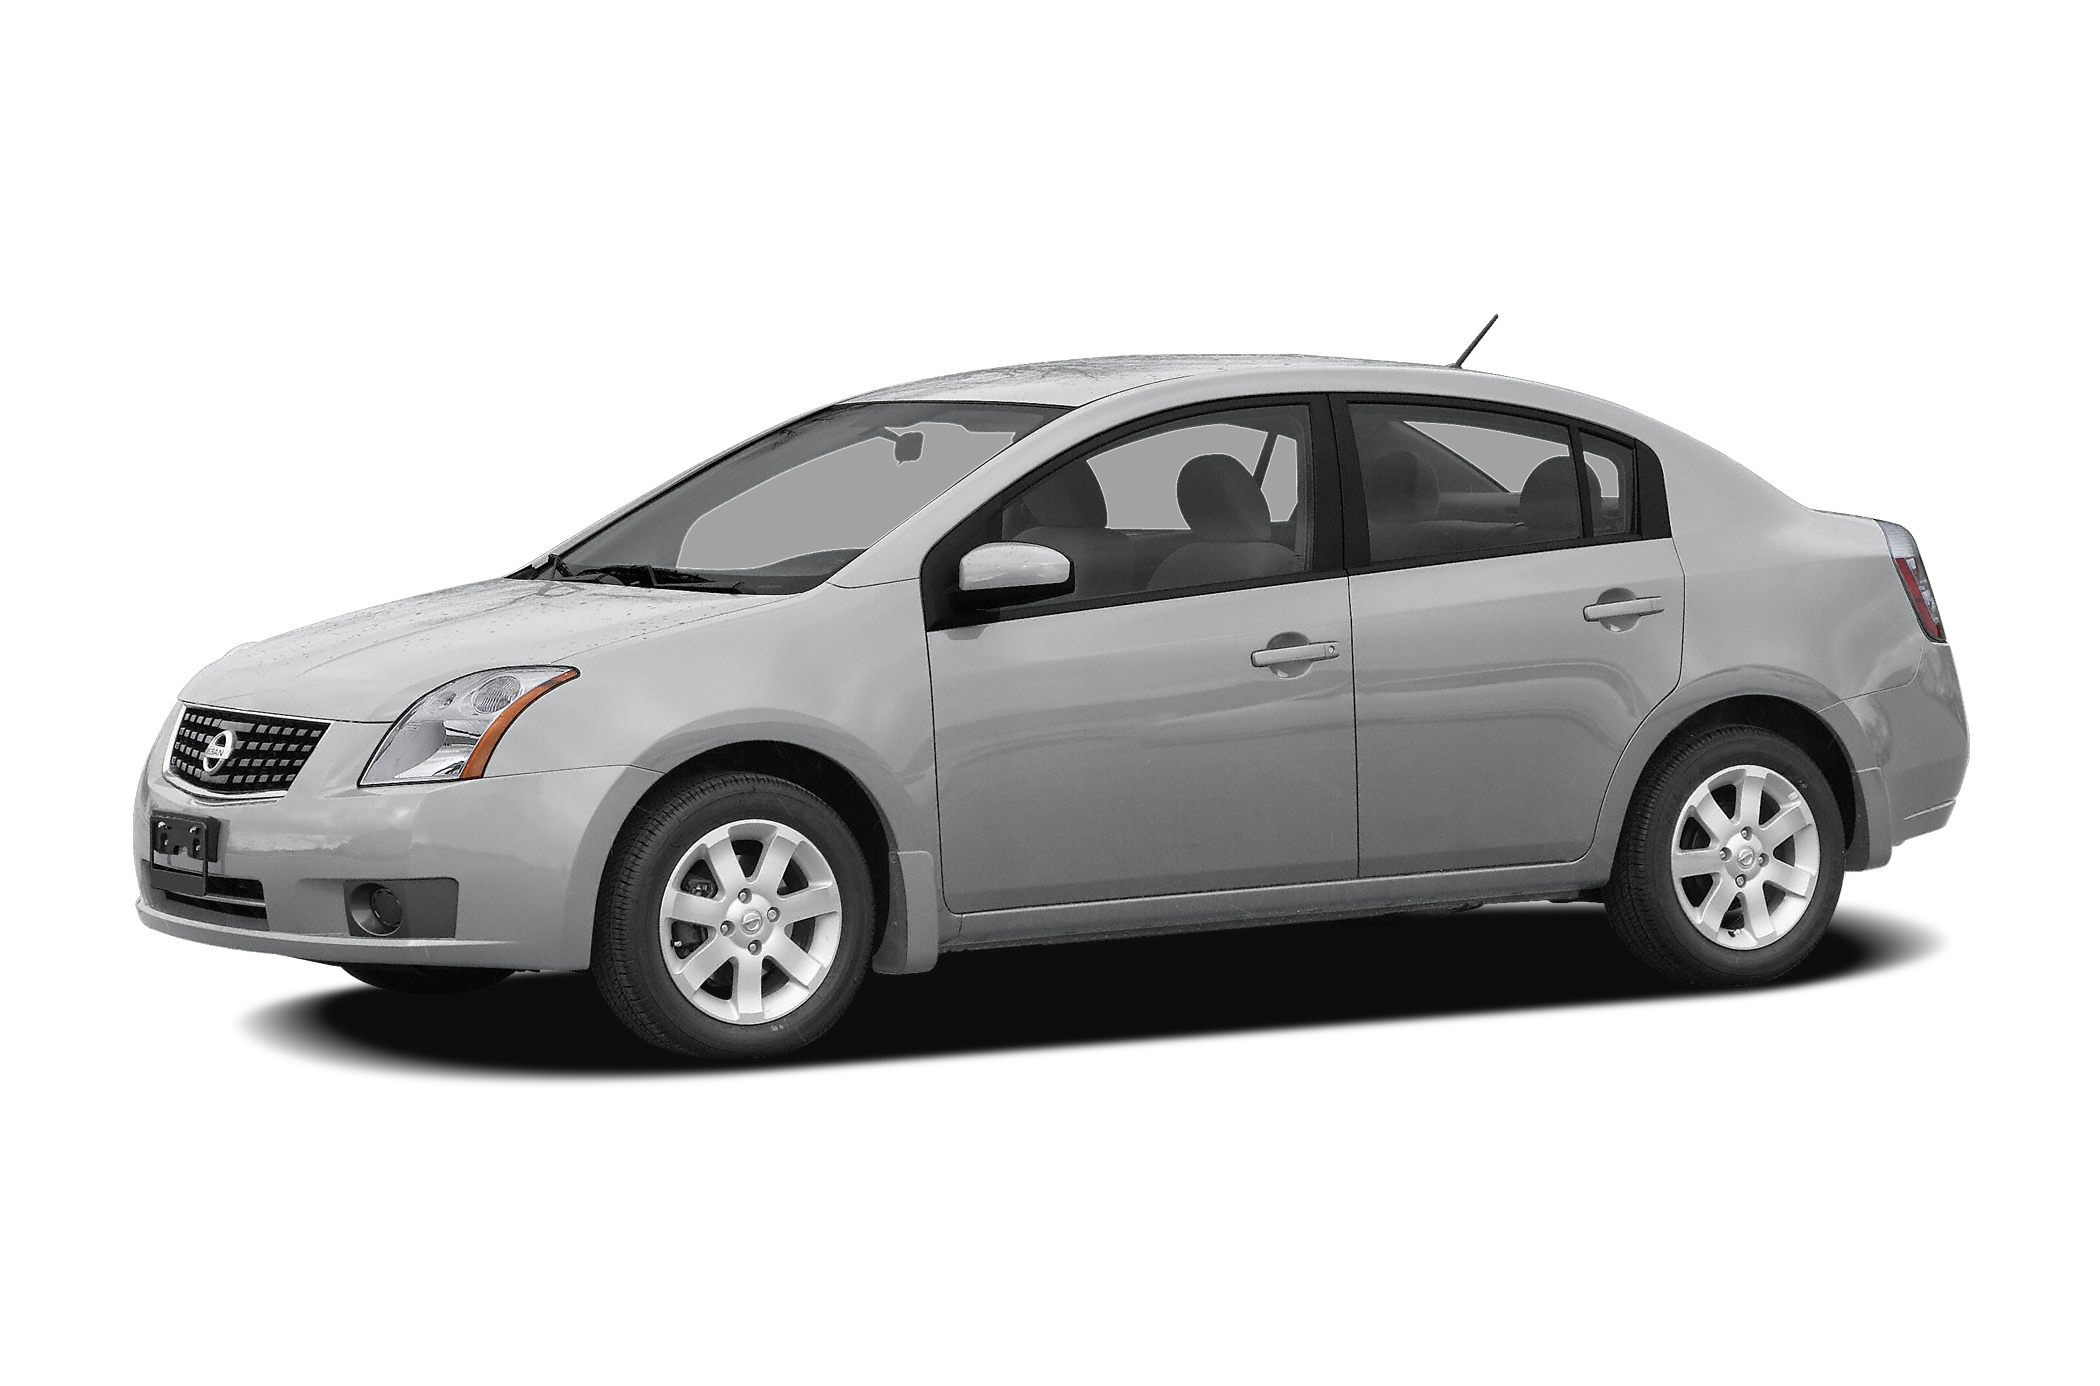 2008 Nissan Sentra 2.0 Sedan for sale in Kernersville for $0 with 154,008 miles